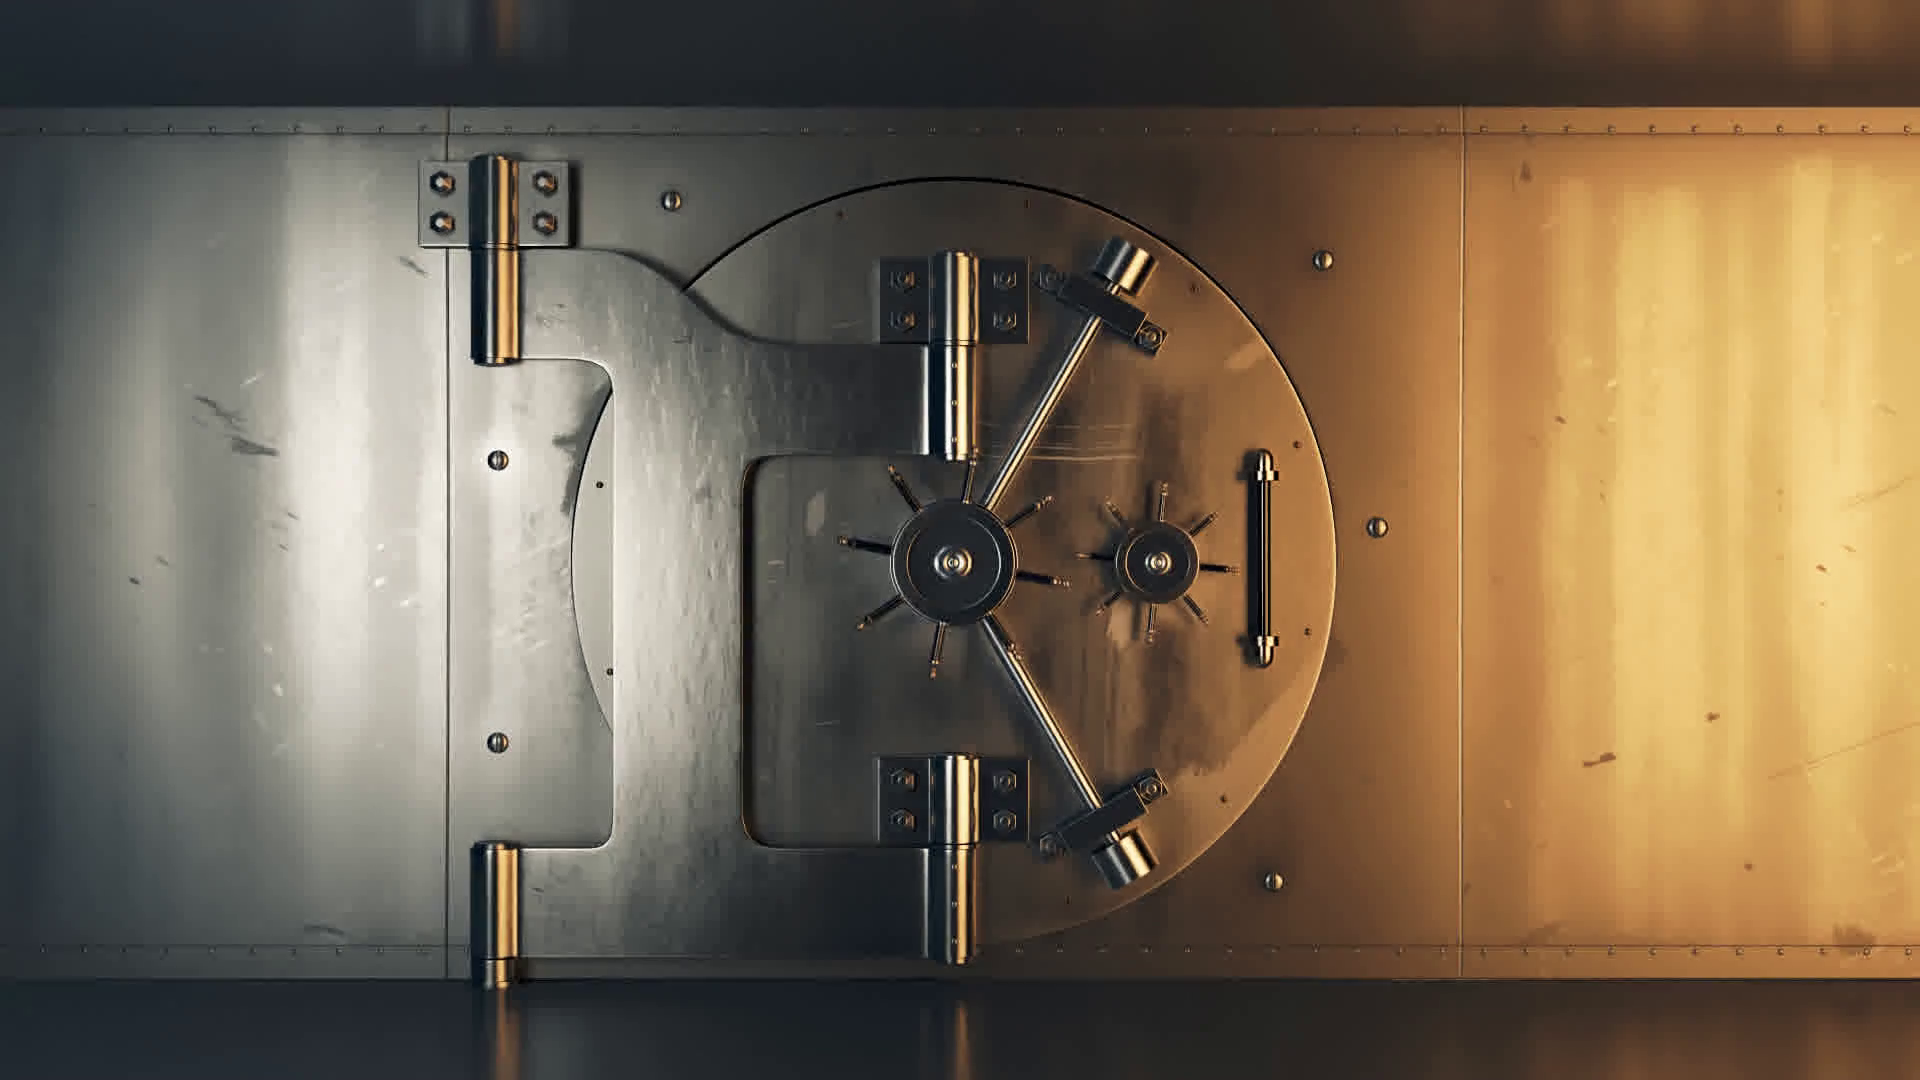 videoblocks-opening-door-of-bank-vault-business-wealth-lock_syxnfinspe_thumbnail-full01.png